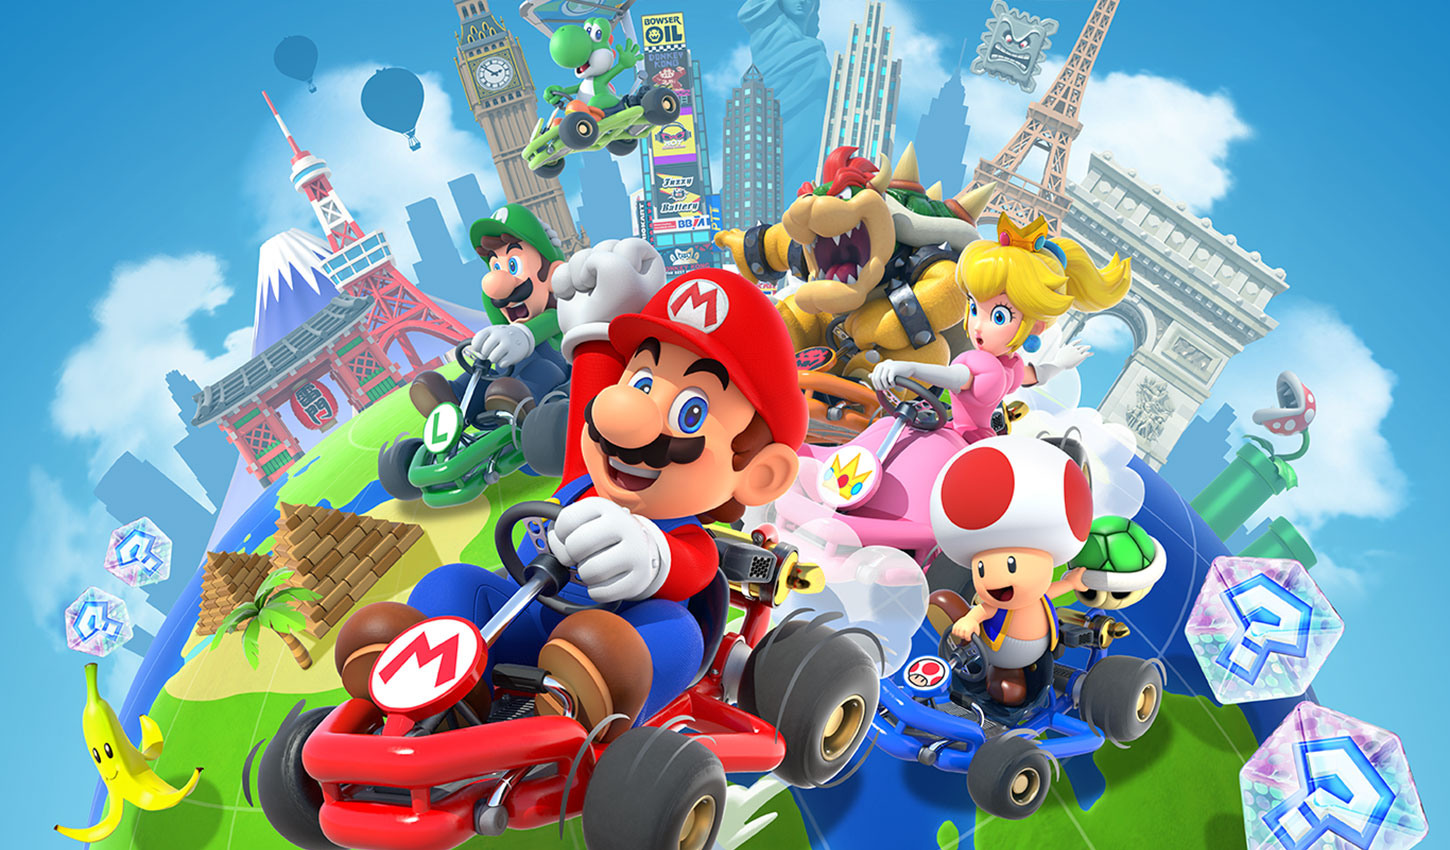 Mario Kart Tour amasses 123.9 million downloads in its first month